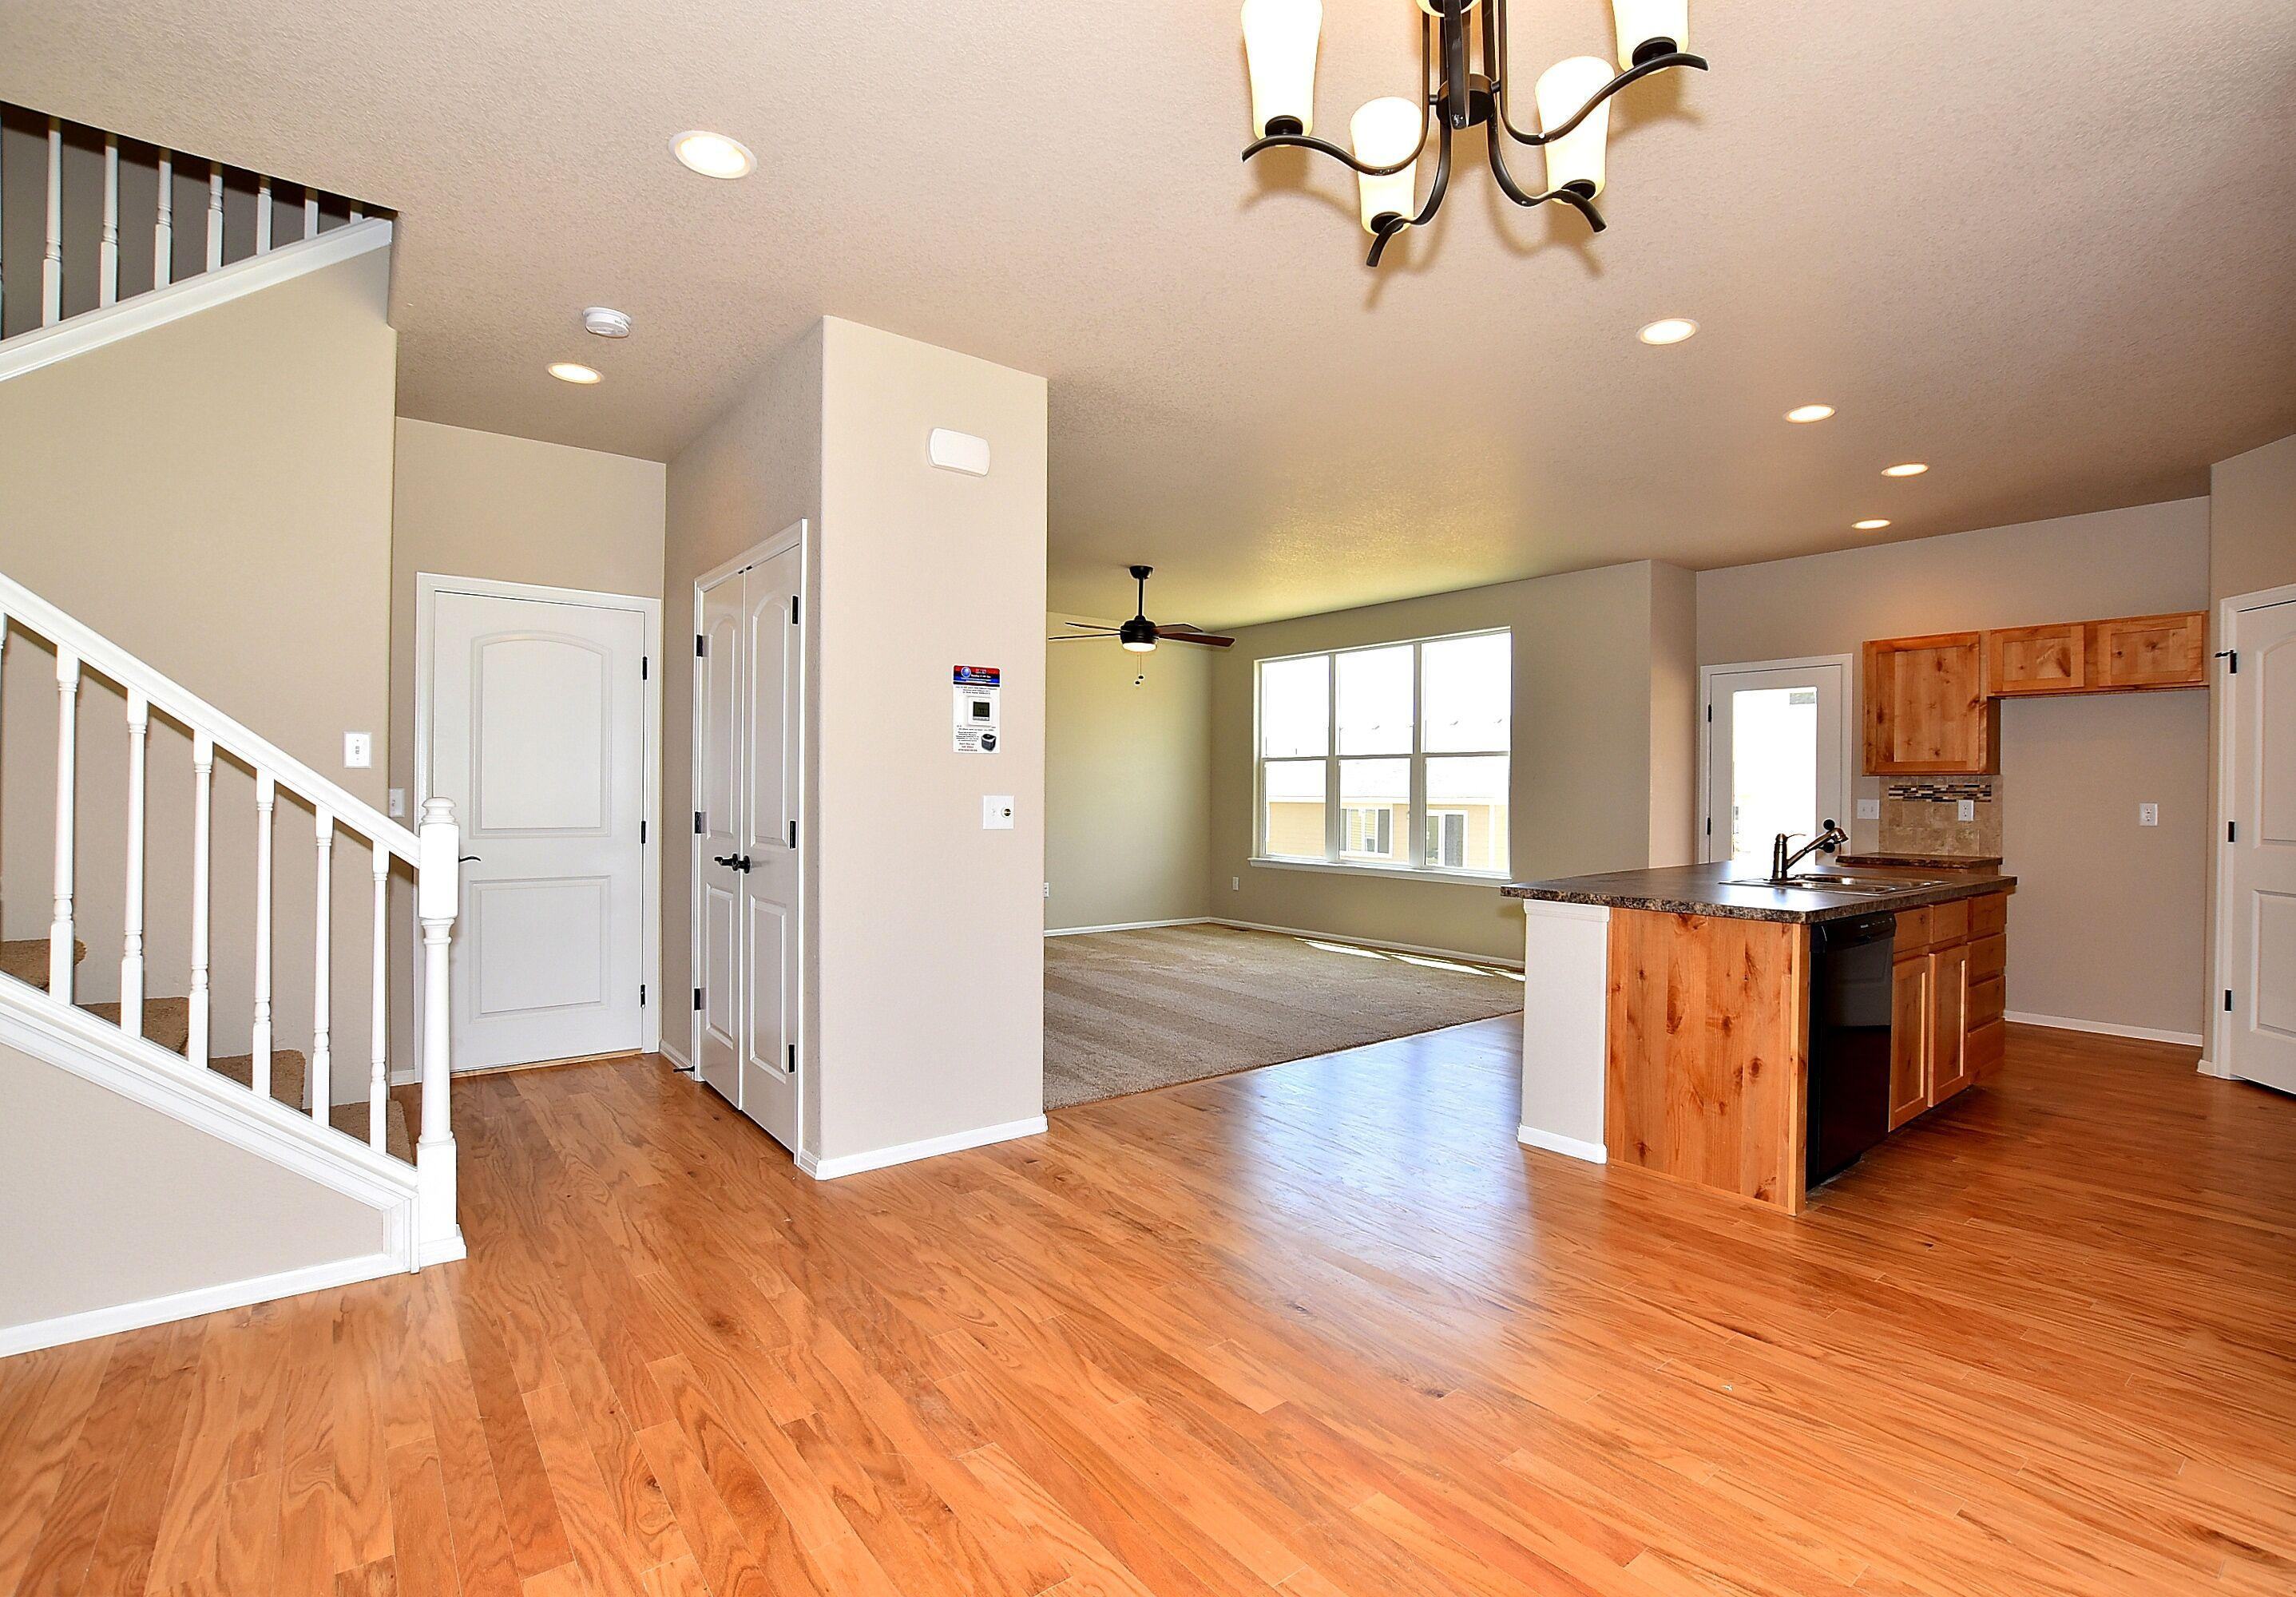 Kitchen featured in the Glendo By Journey Homes in Greeley, CO